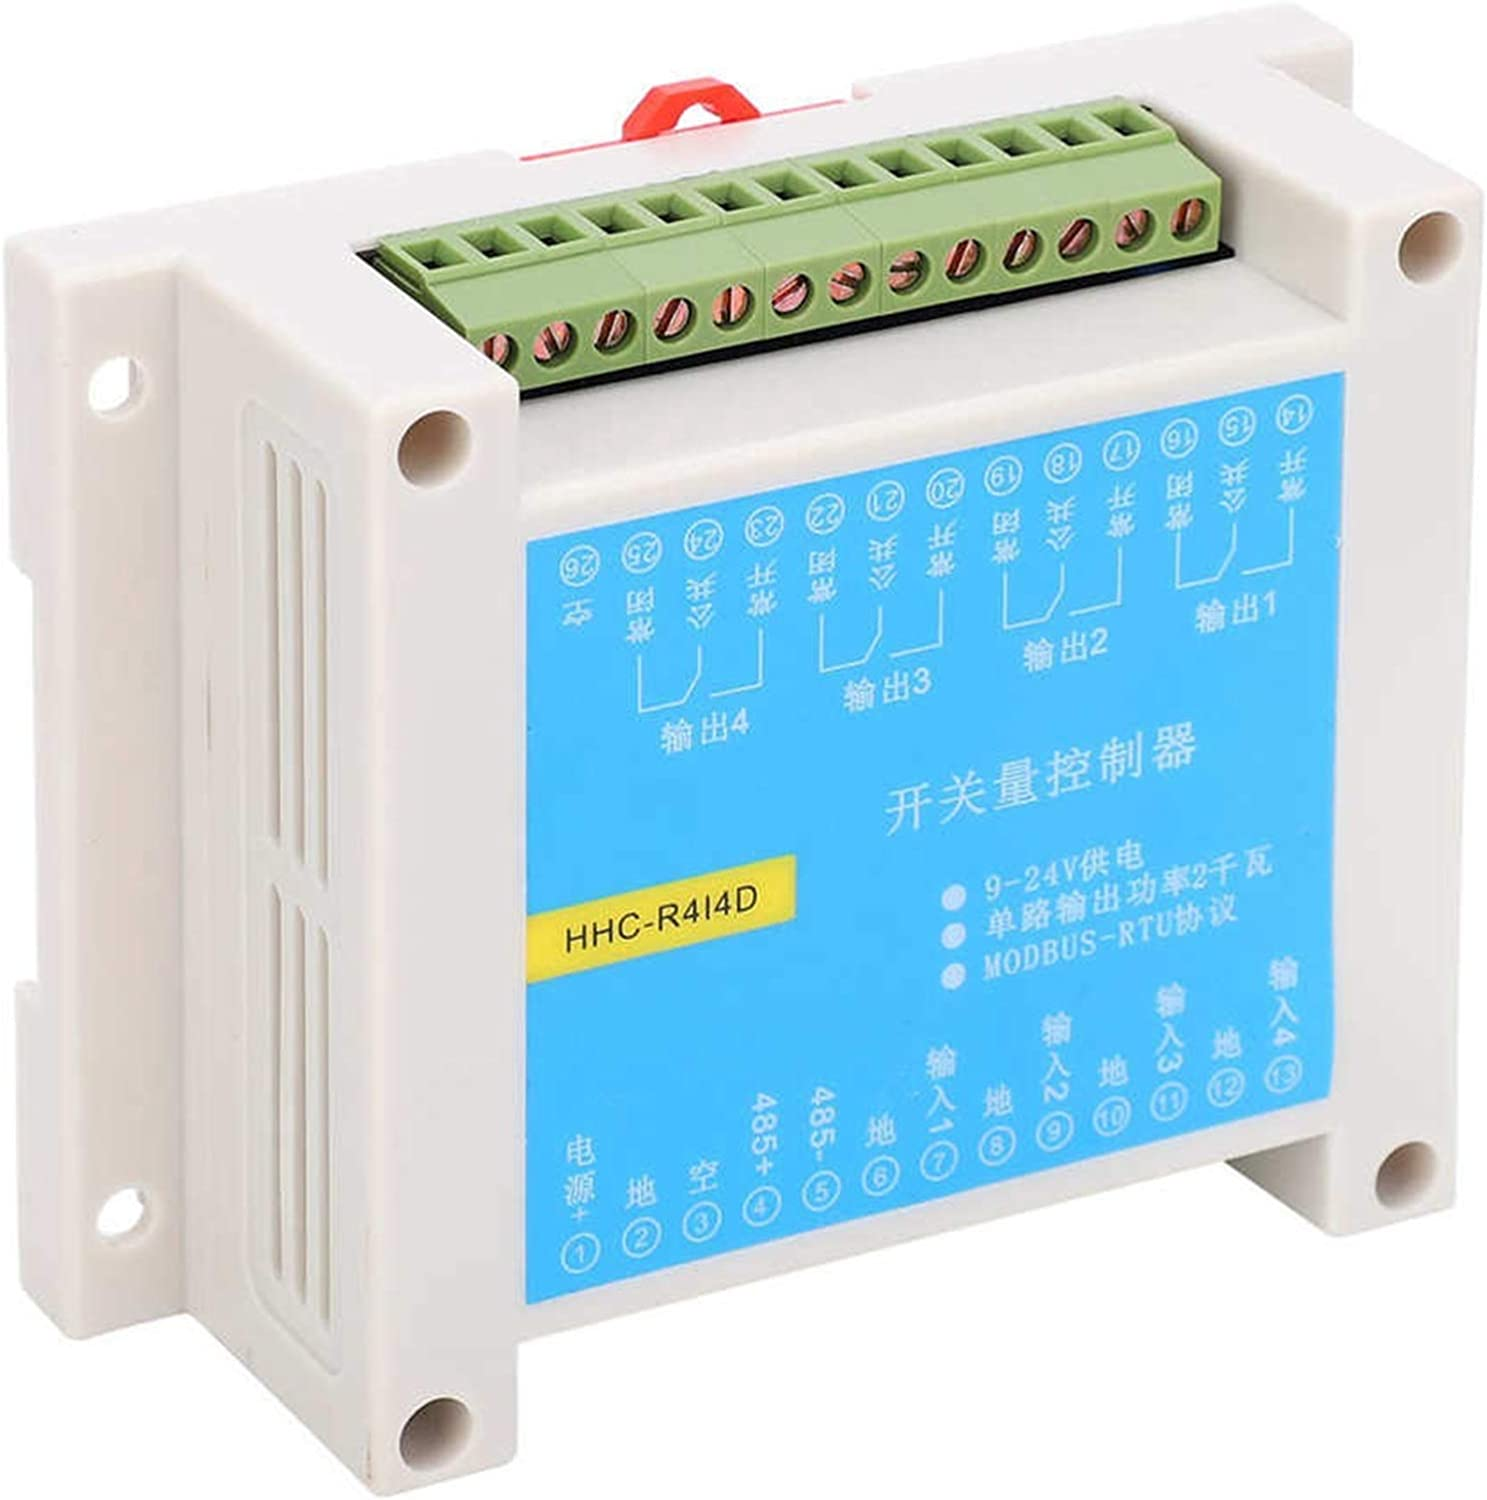 SHENYUAN 1 pc Relay Courier shipping free Max 59% OFF Module R4I4D in 4 Out DMODBUS Protocol RTU